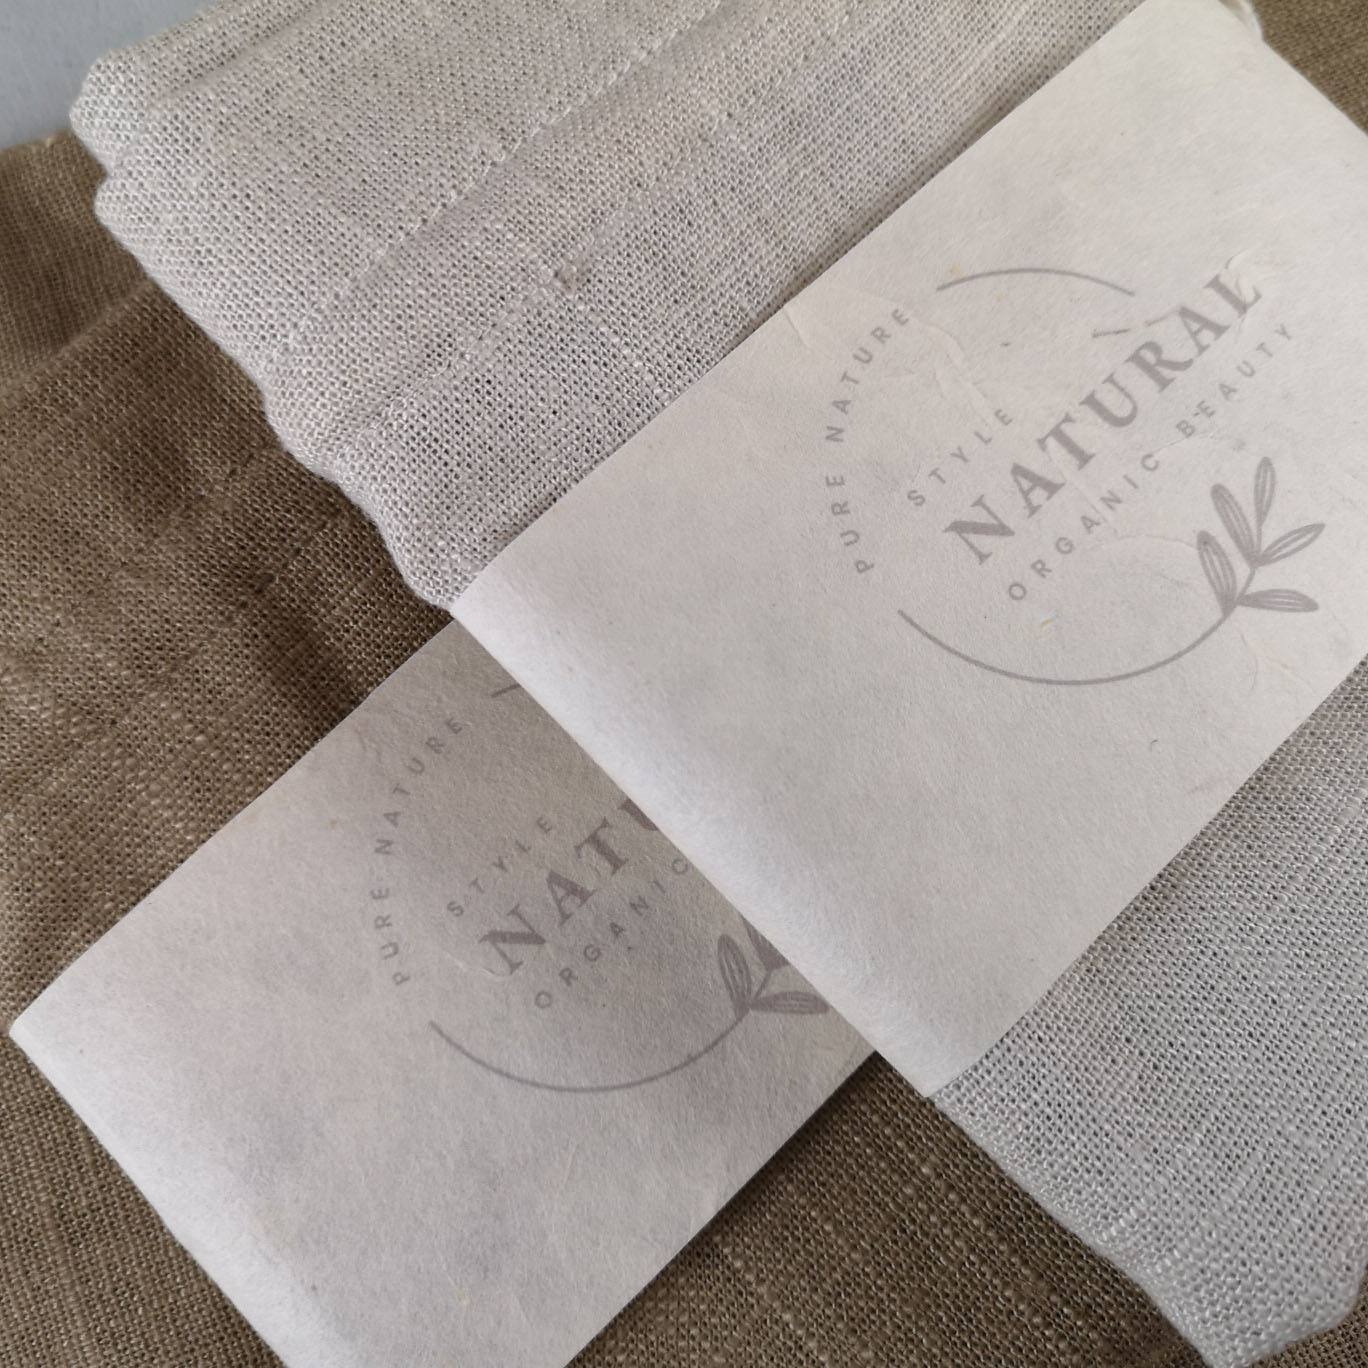 Hemp drawstring bags for packaging